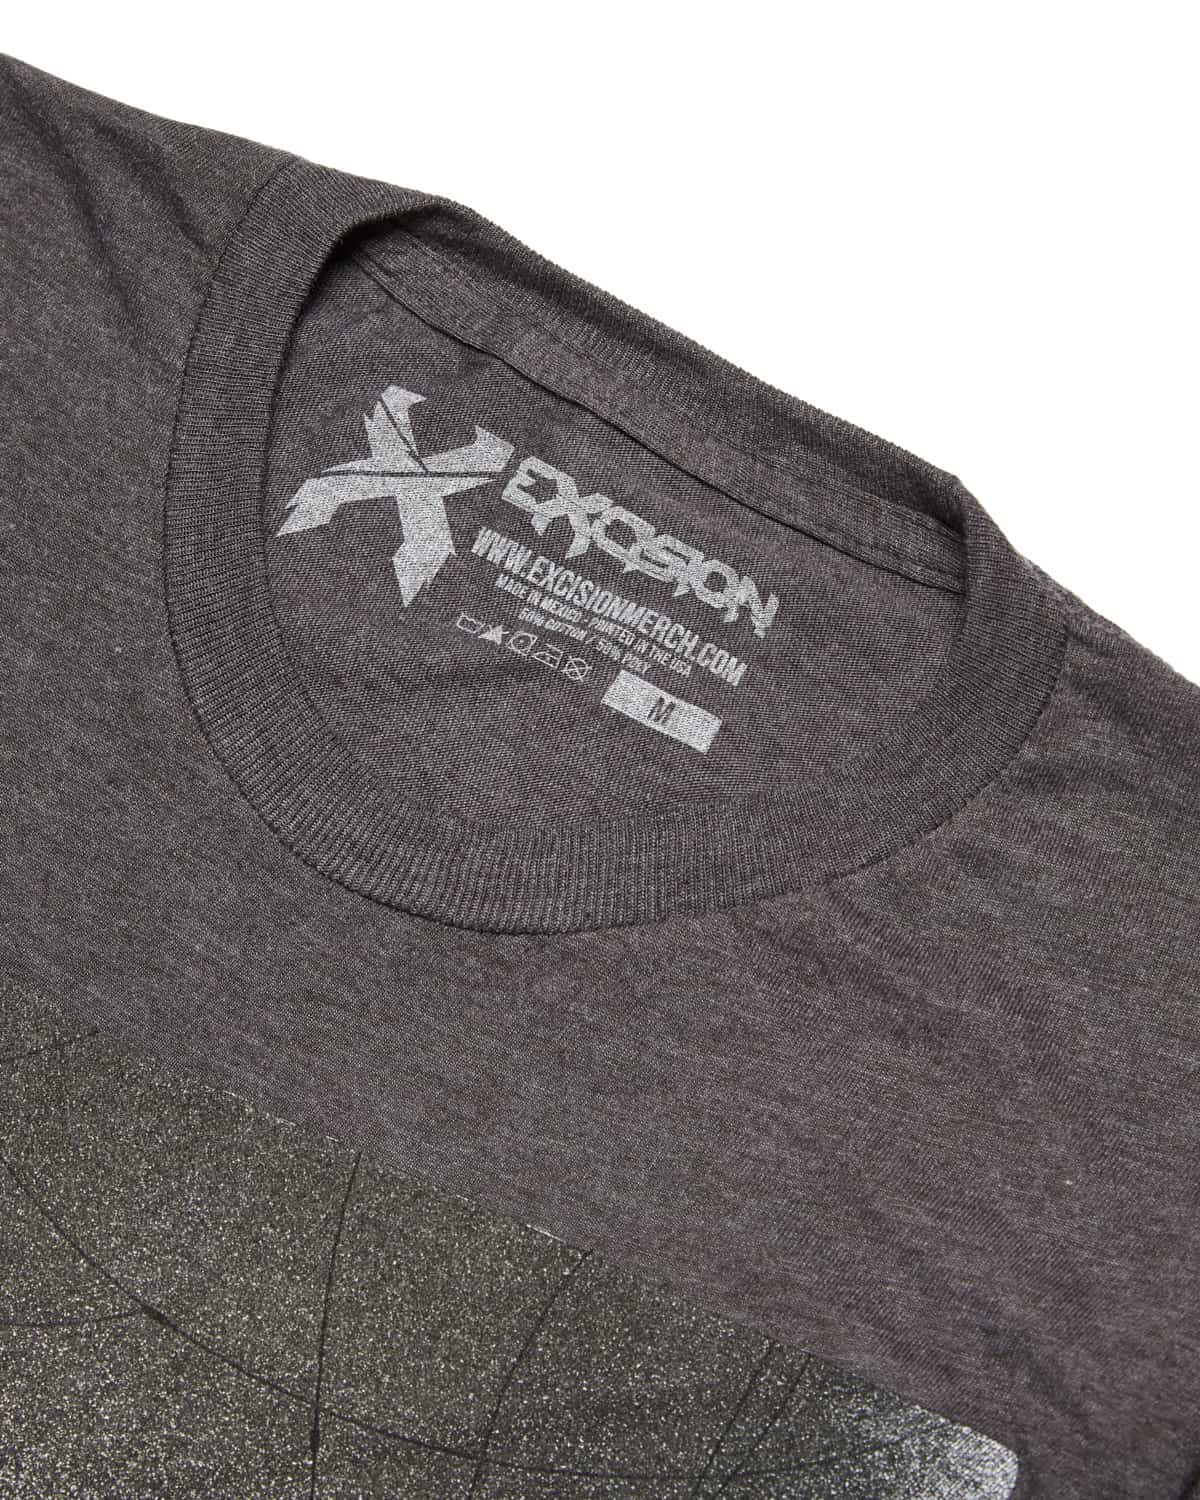 Excision 'Moshpit' Unisex T-Shirt - Grey/White